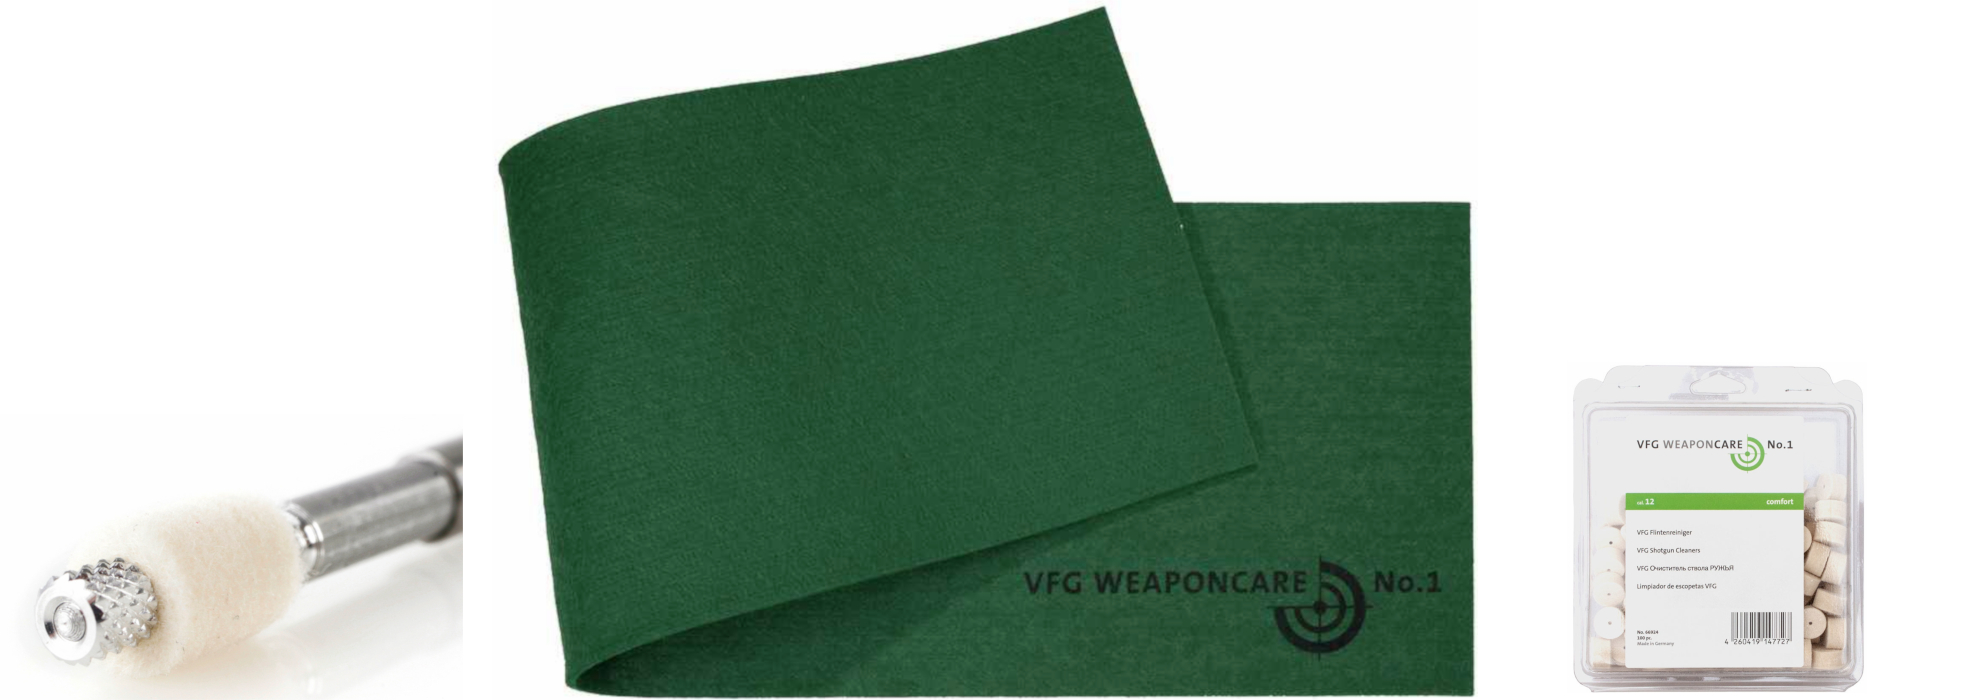 VFG Weaponcare No.1